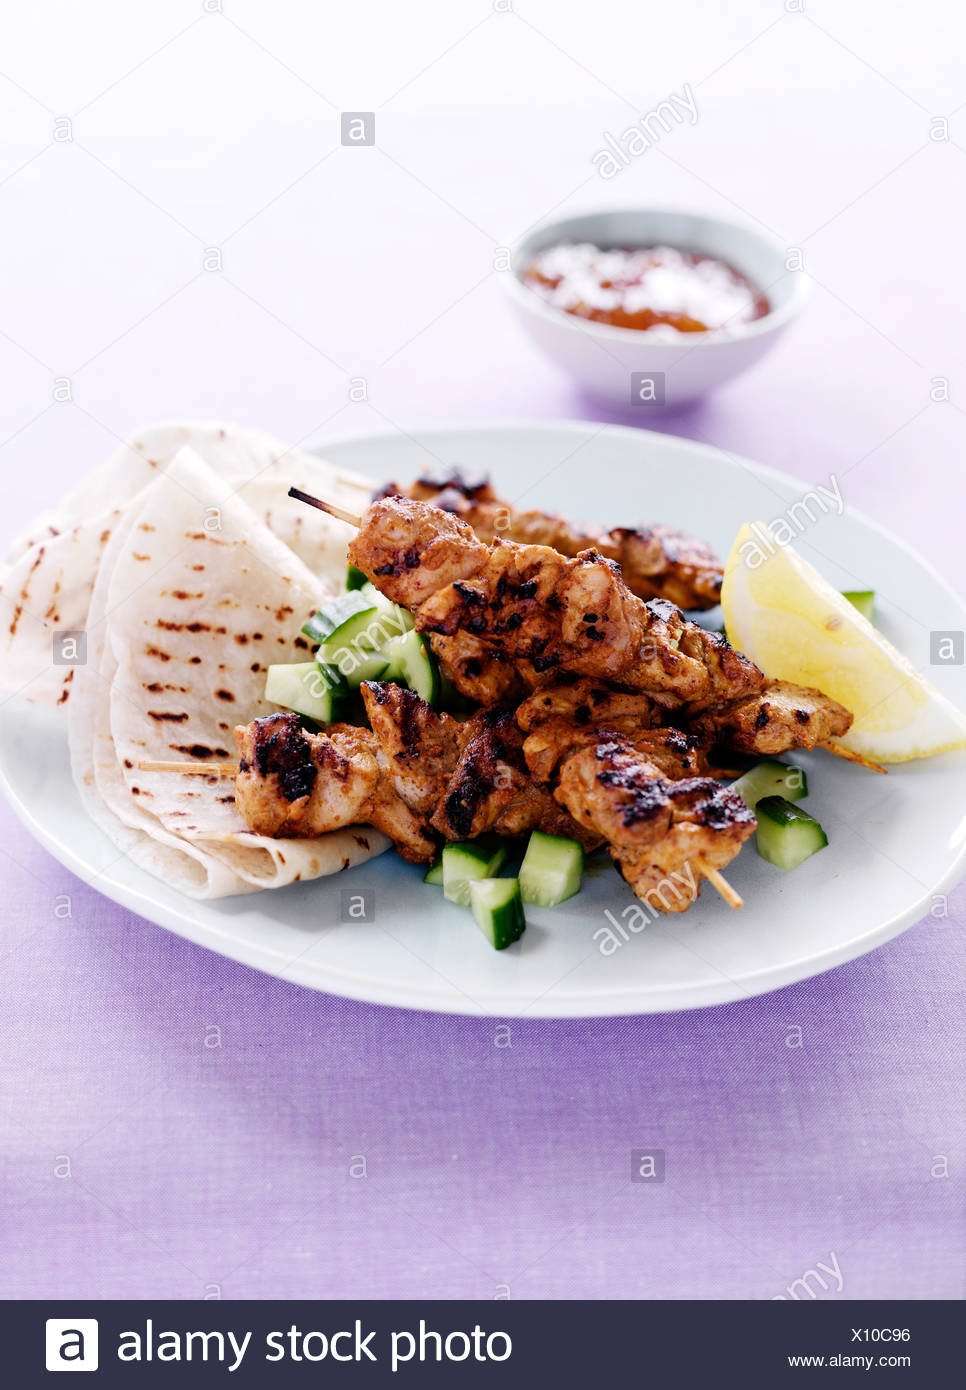 Plate of kebabs with meat - Stock Image